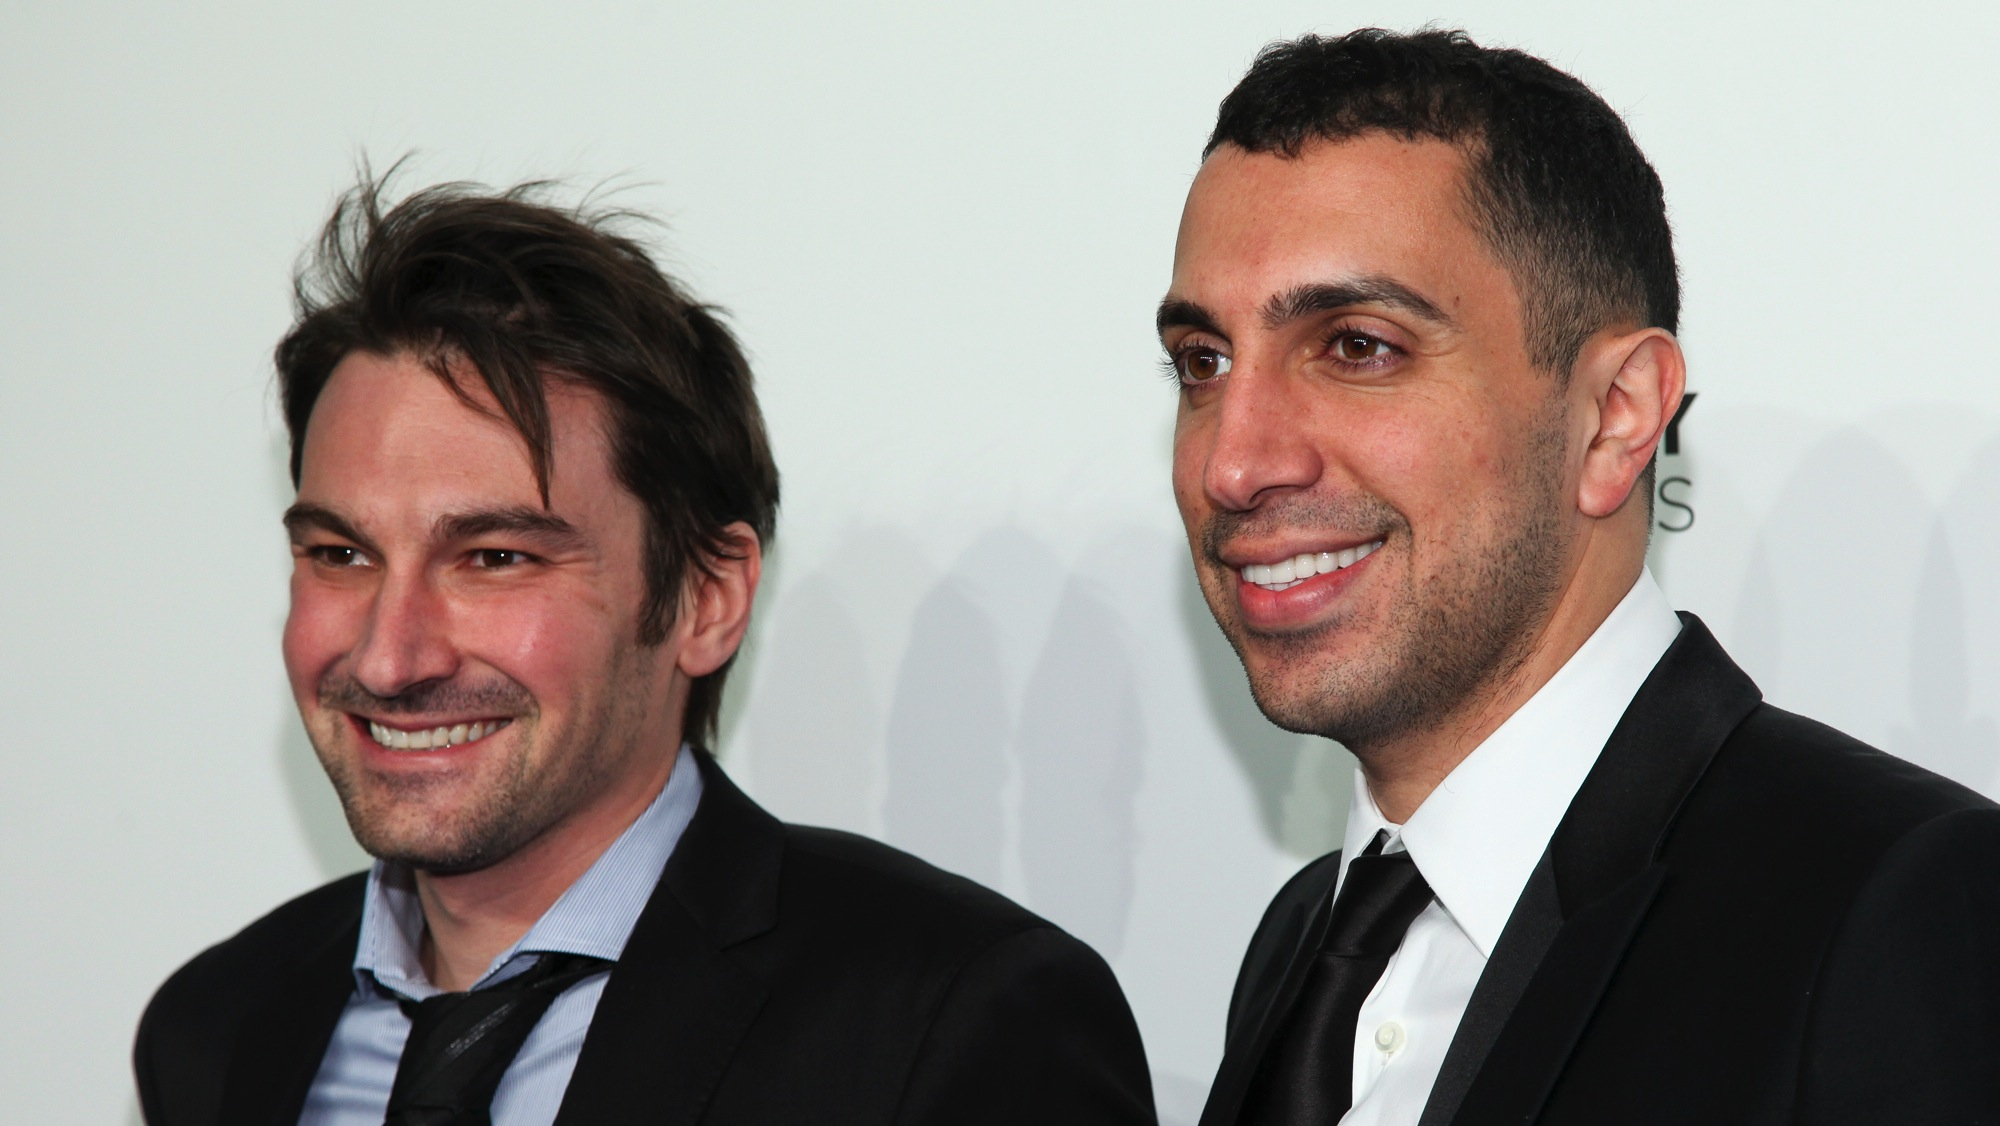 Co-founders of Tinder Jonathan Badeen, left, and Sean Rad, right, attend the 19th Annual Webby Awards at Cipriani Wall Street on Monday, May 18, 2015, in New York. (Photo by Andy Kropa/Invision/AP)